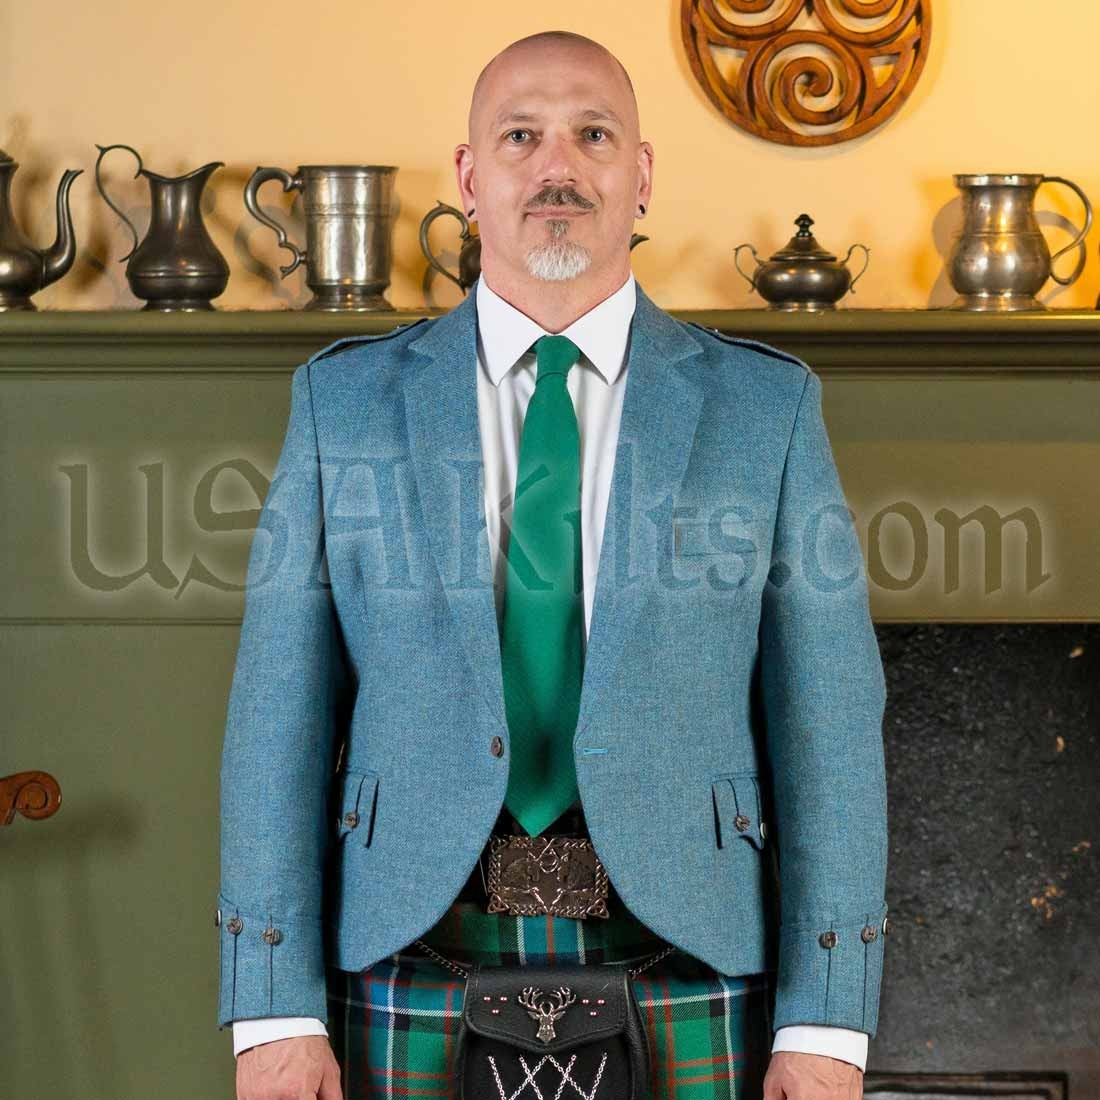 Tweed Jacket | Kilt Jackets | USA Kilts